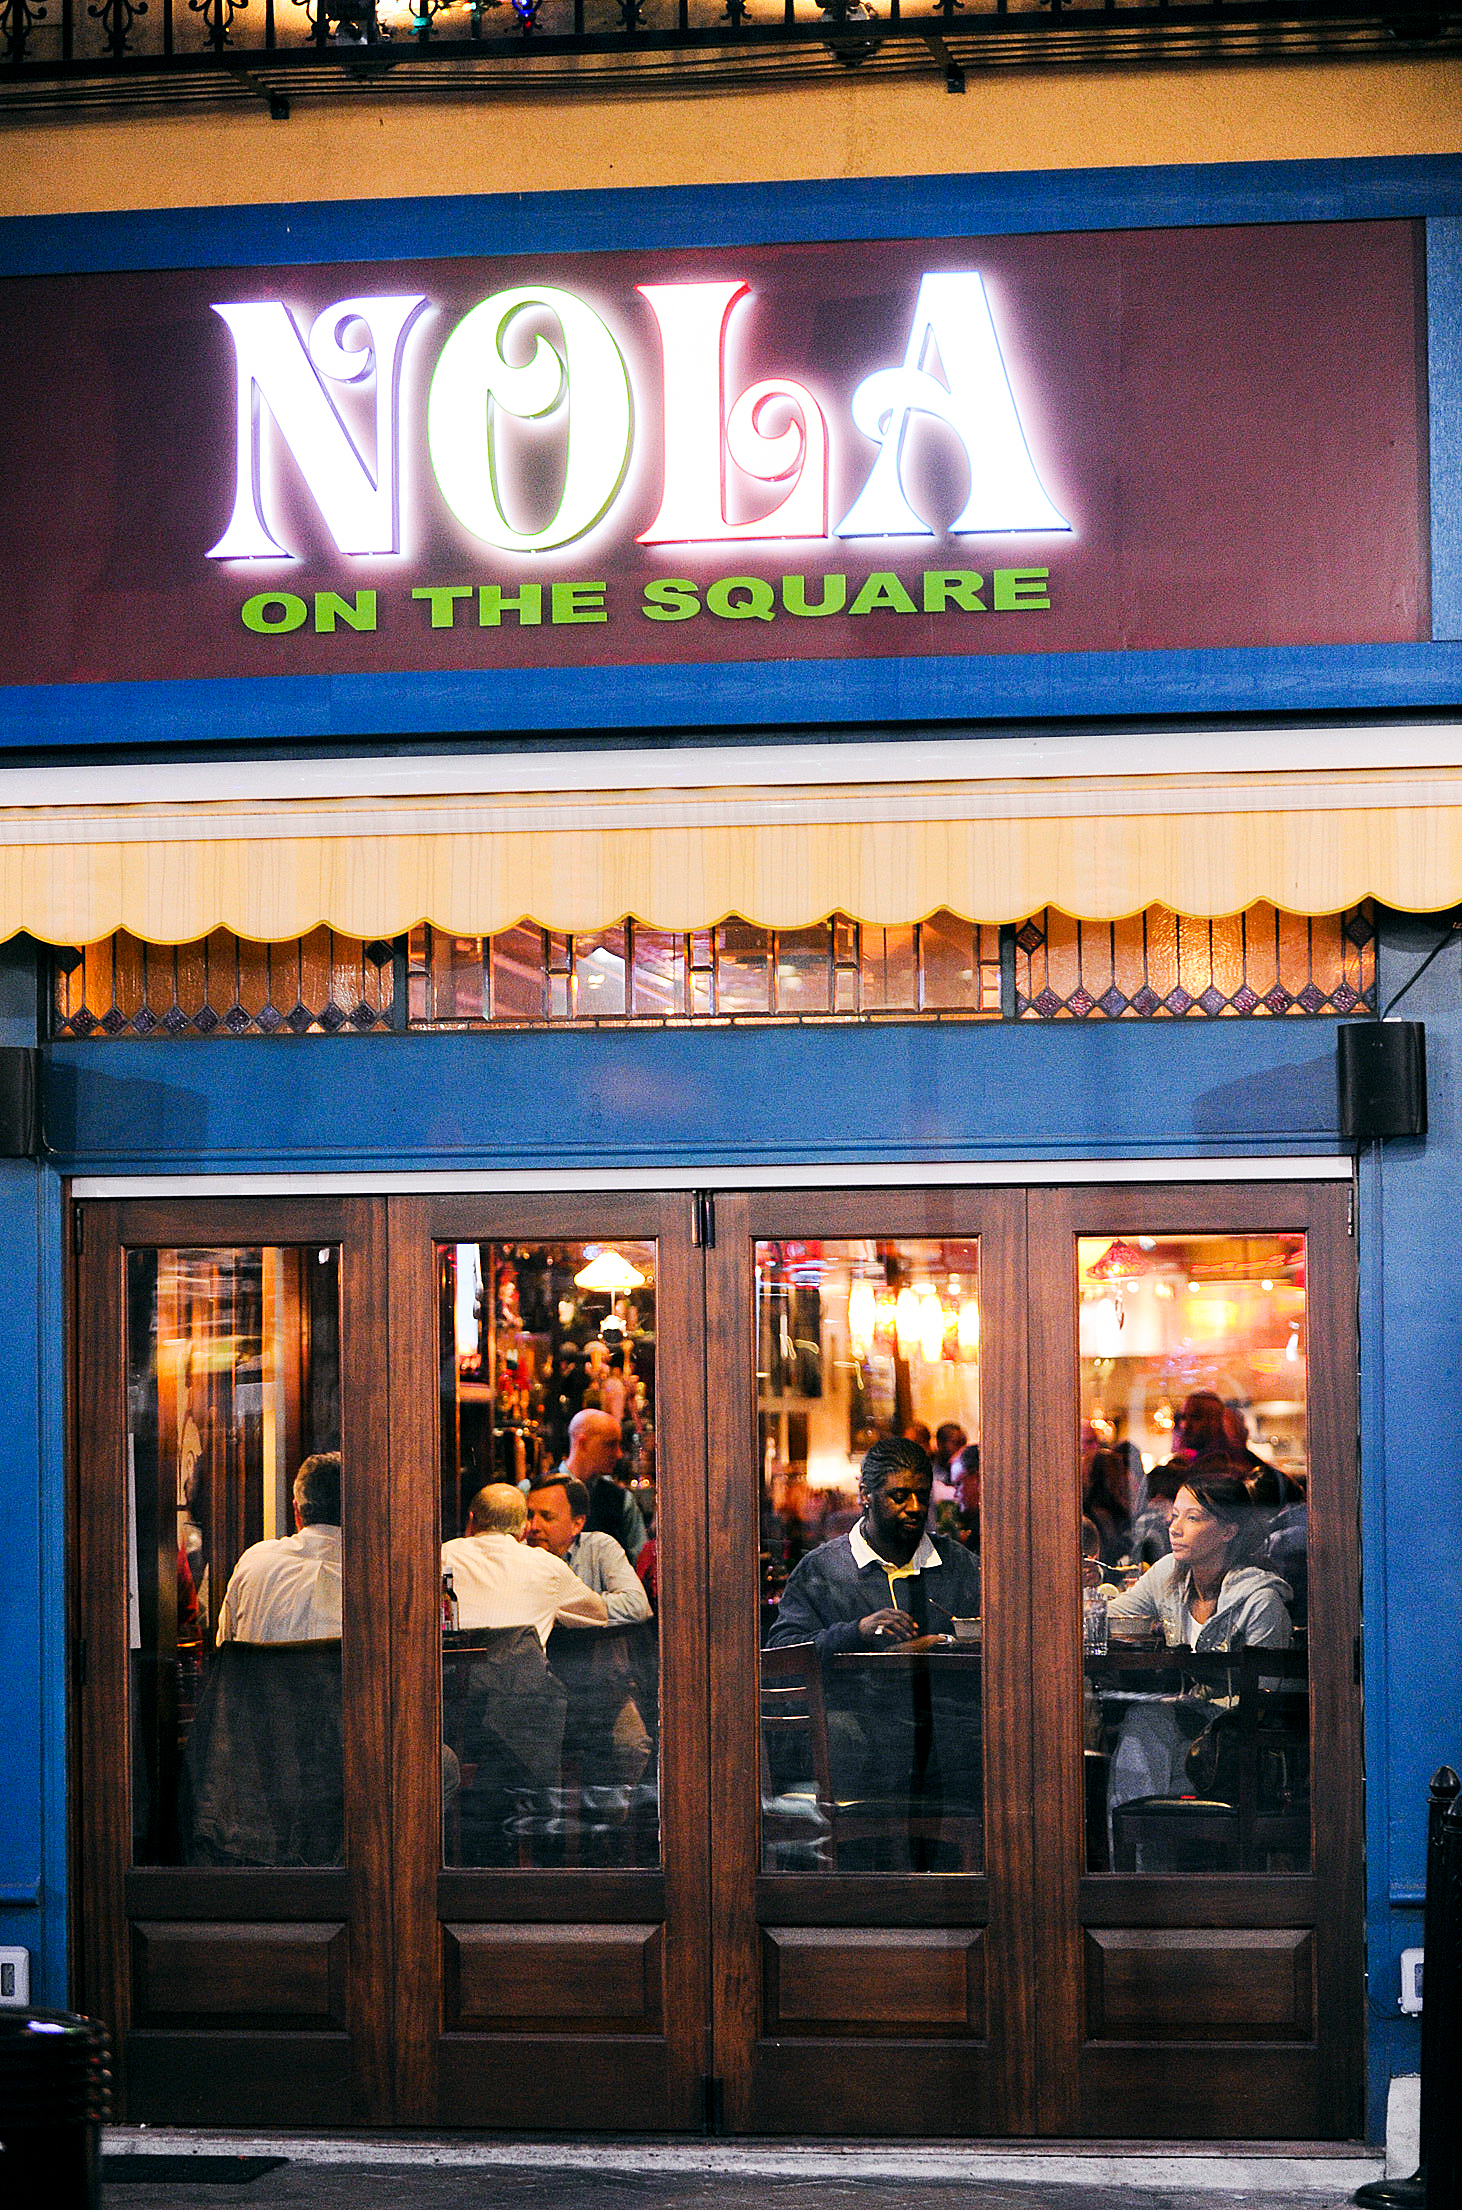 NOLA on the Square  NOLA on the Square will open July 15 after a three-alarm fire caused serious damage on Feb. 24.